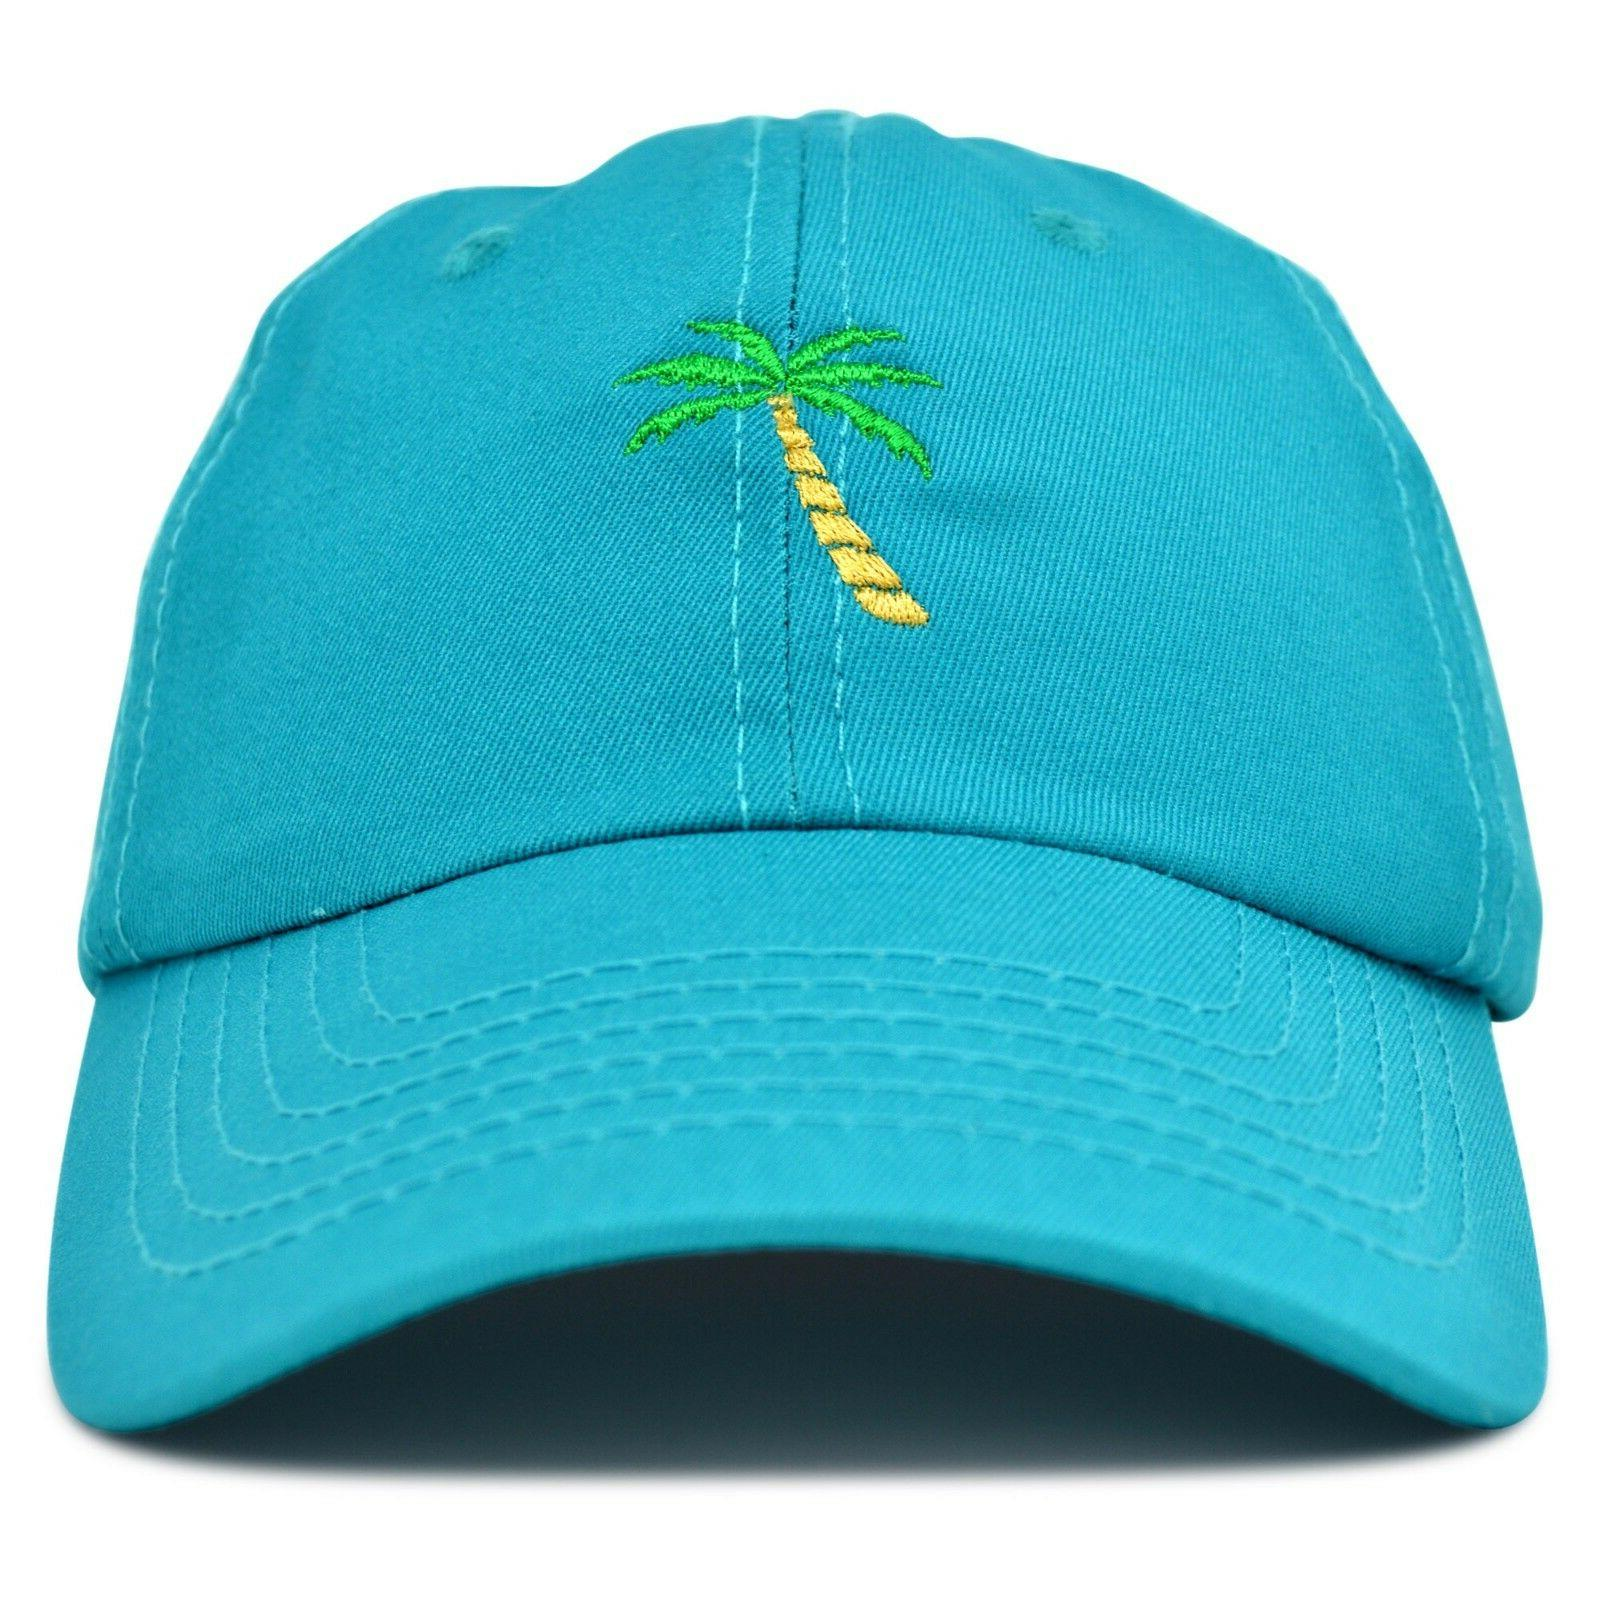 DALIX Dad Hats Tree Baseball Trucker Caps in Teal